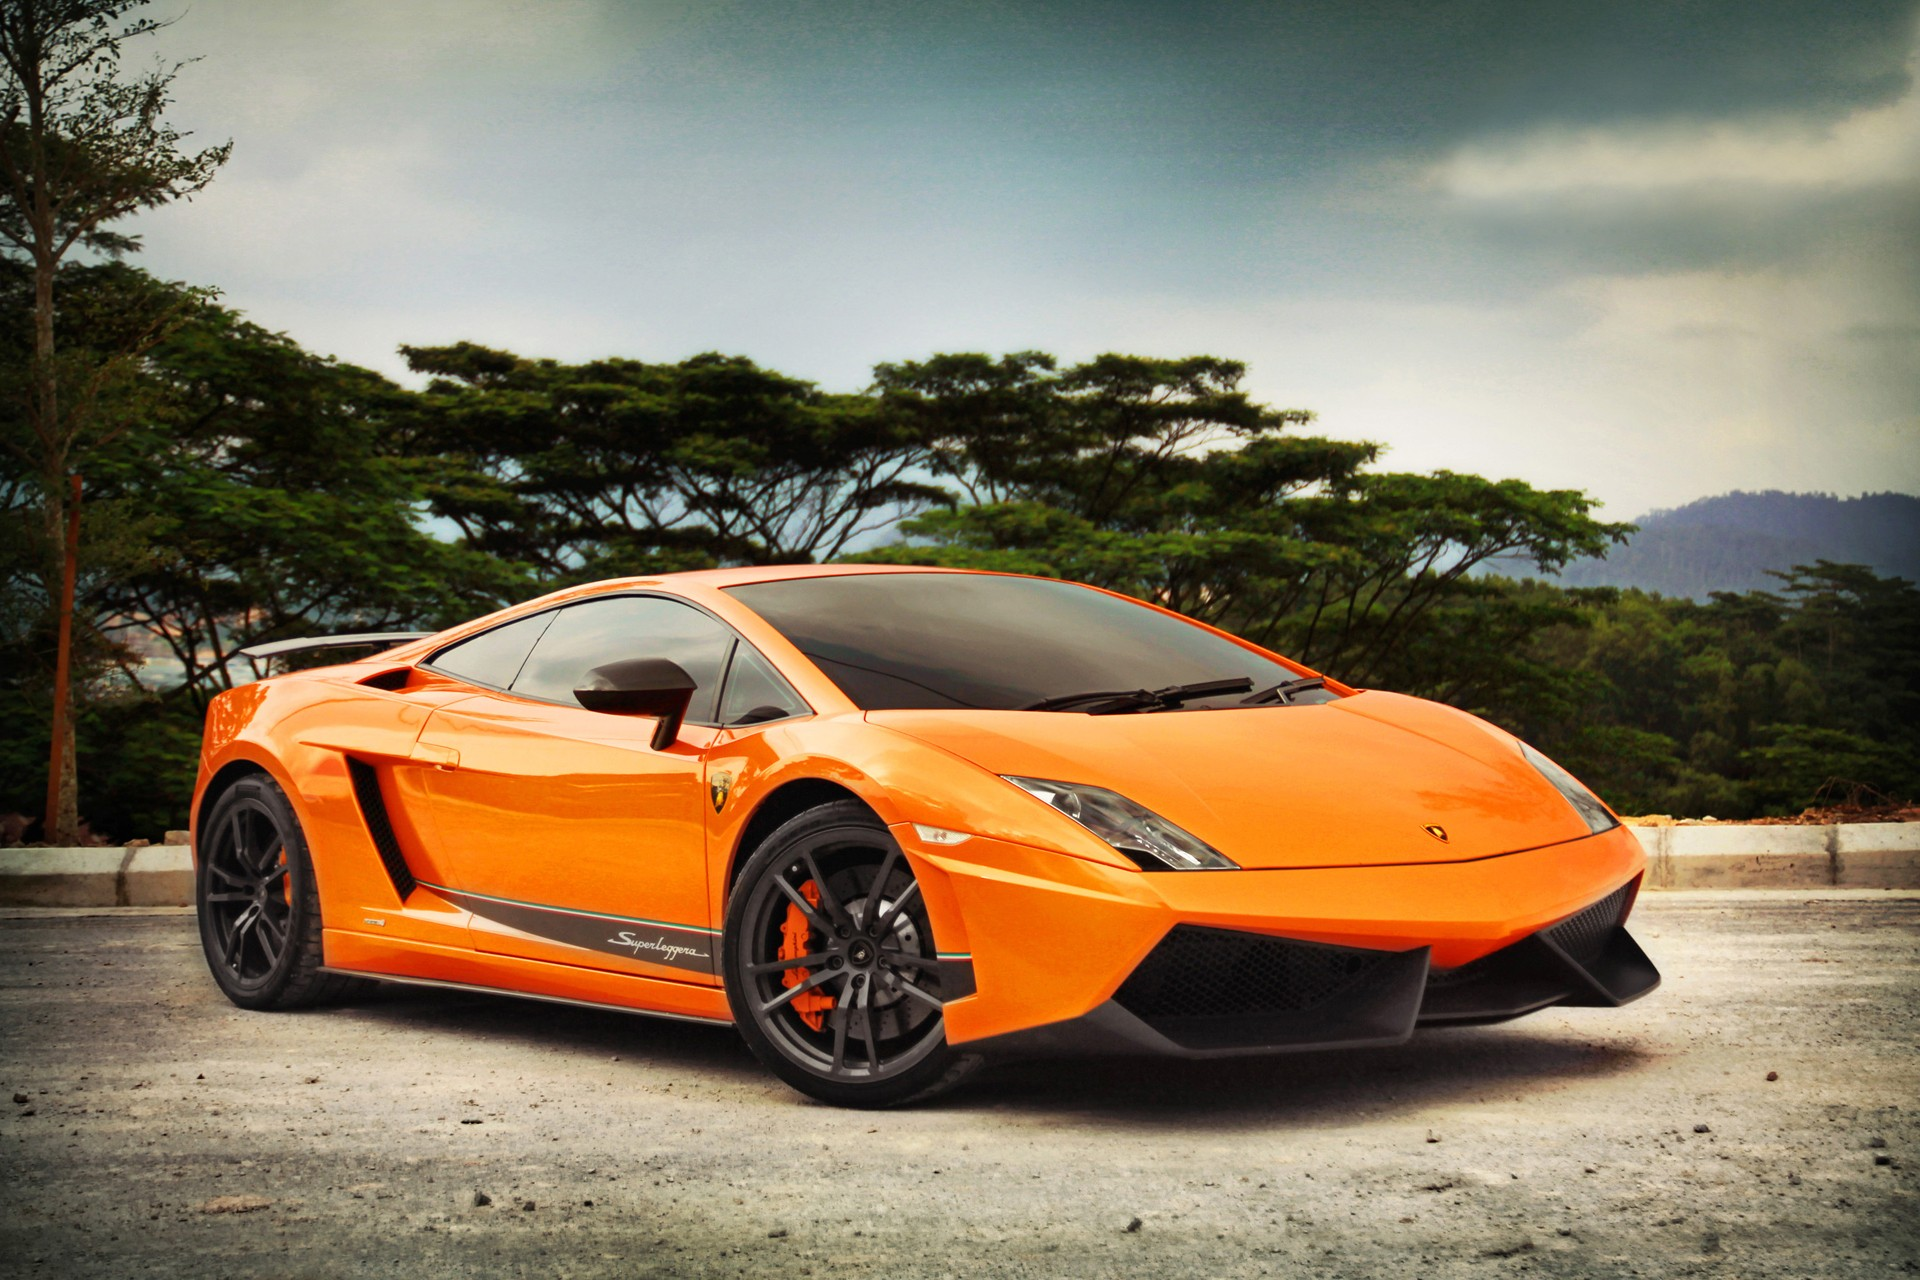 Cars Supercars Wallpaper 1920x1280 Cars Supercars Lamborghini 1920x1280